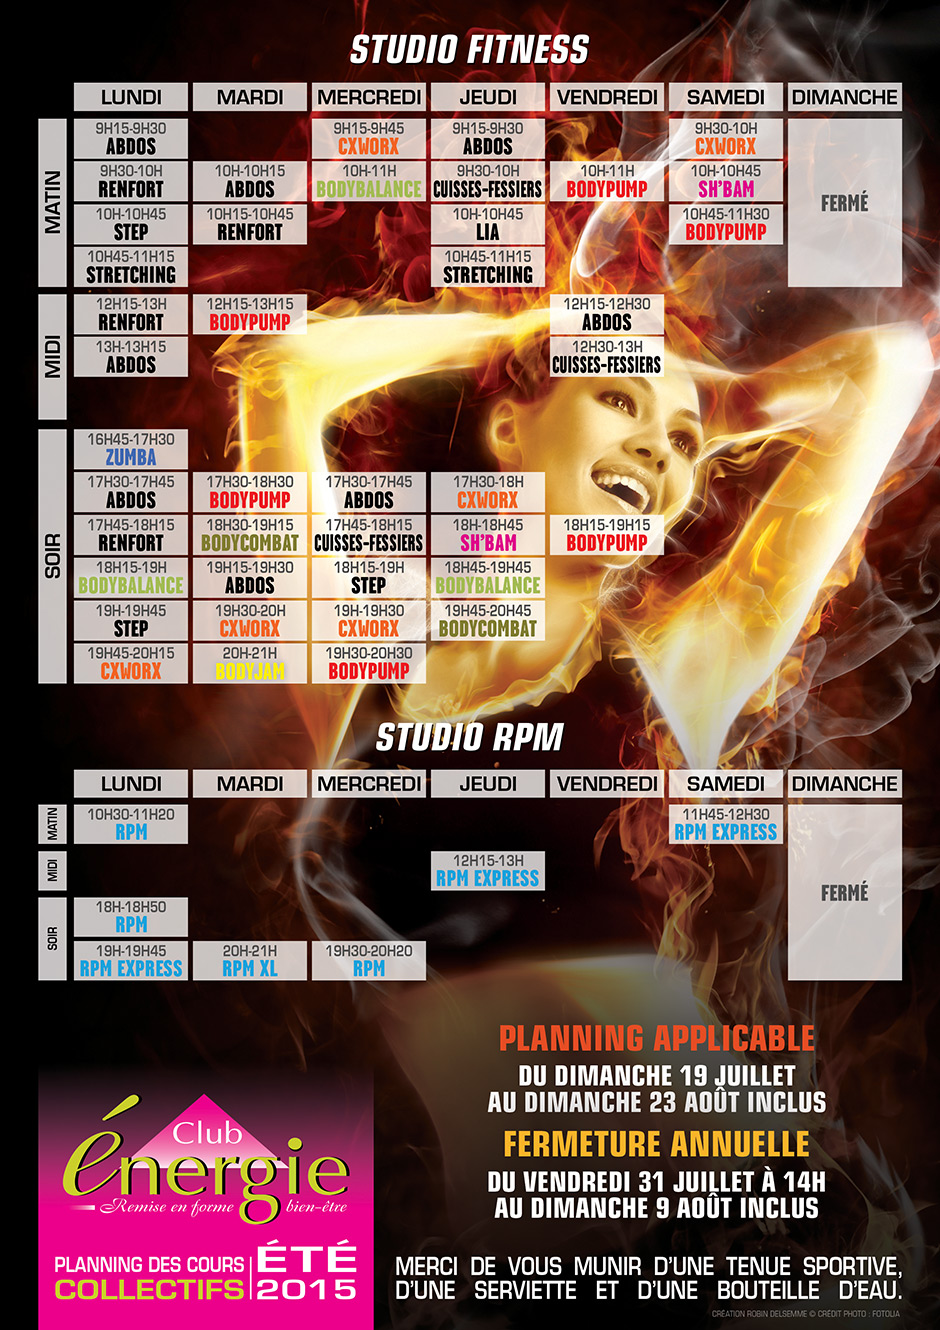 Planning cours collectifs ete 2015 Club Energie Fitness Orleans